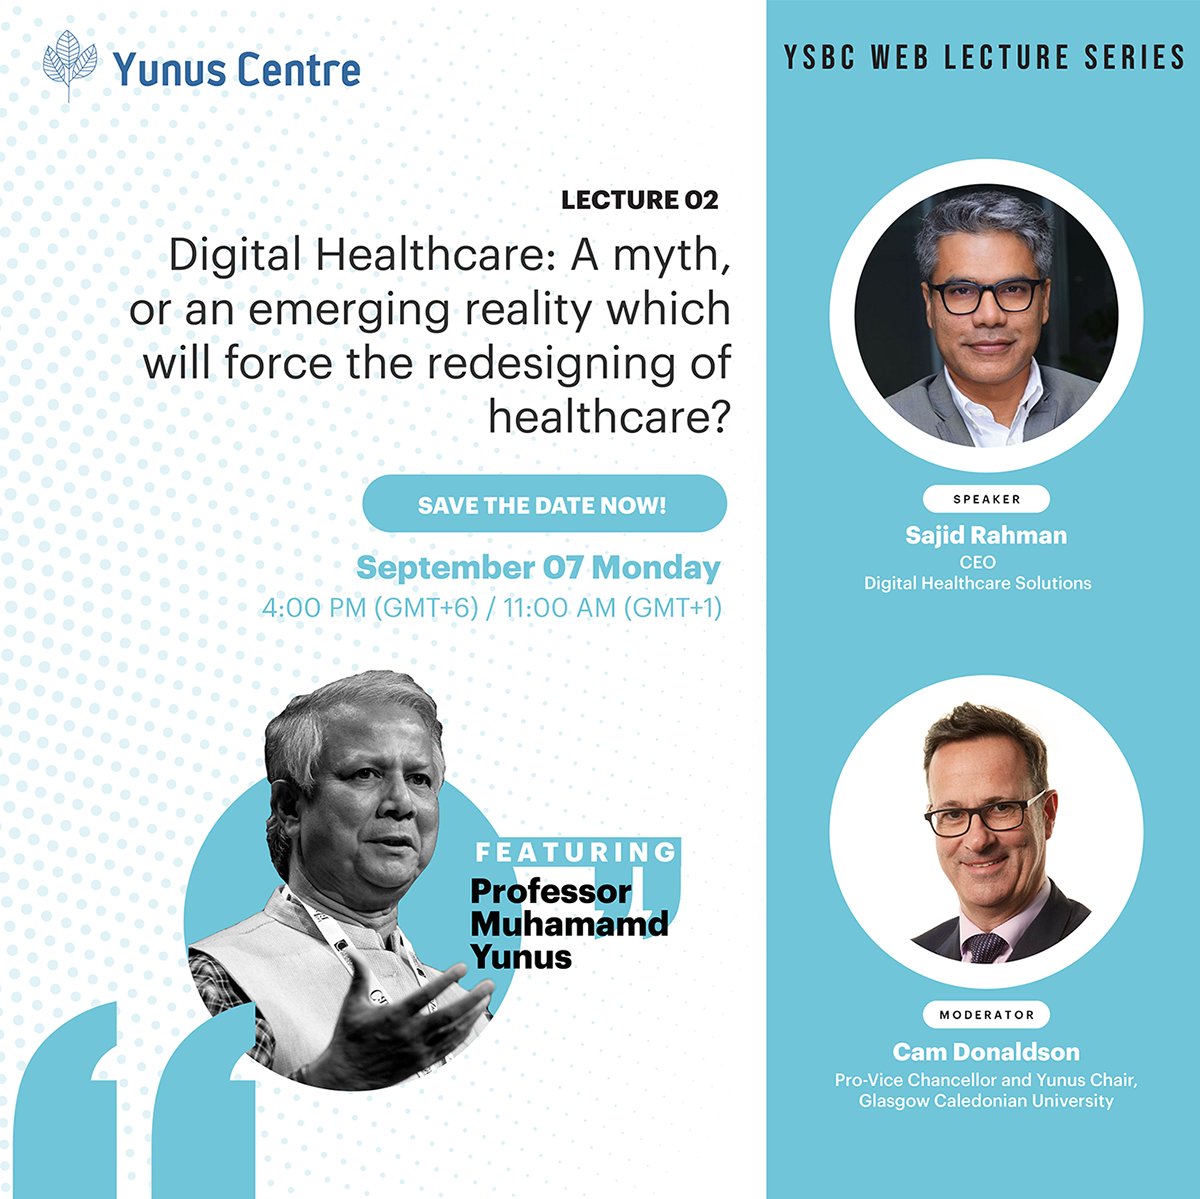 Registration now open for Lecture 02 of YSBC Web Lecture Series